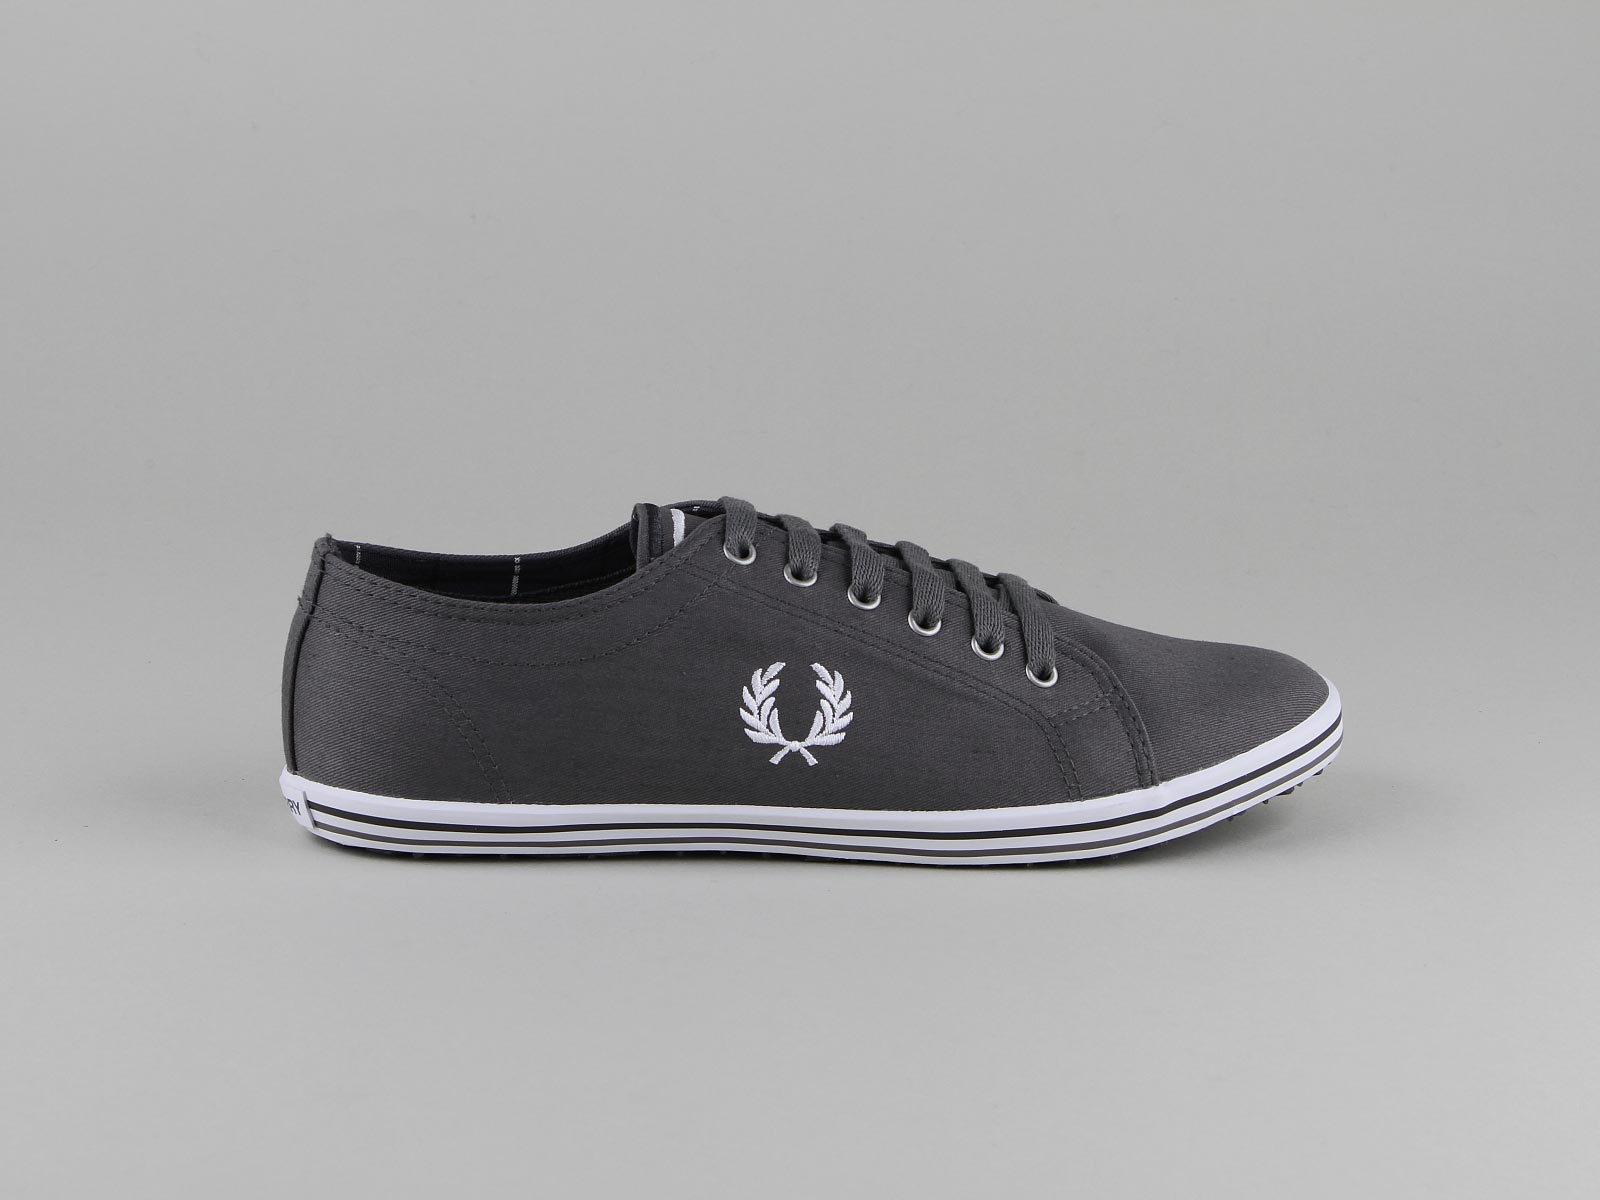 d0f83014e6a chaussure toile fred perry